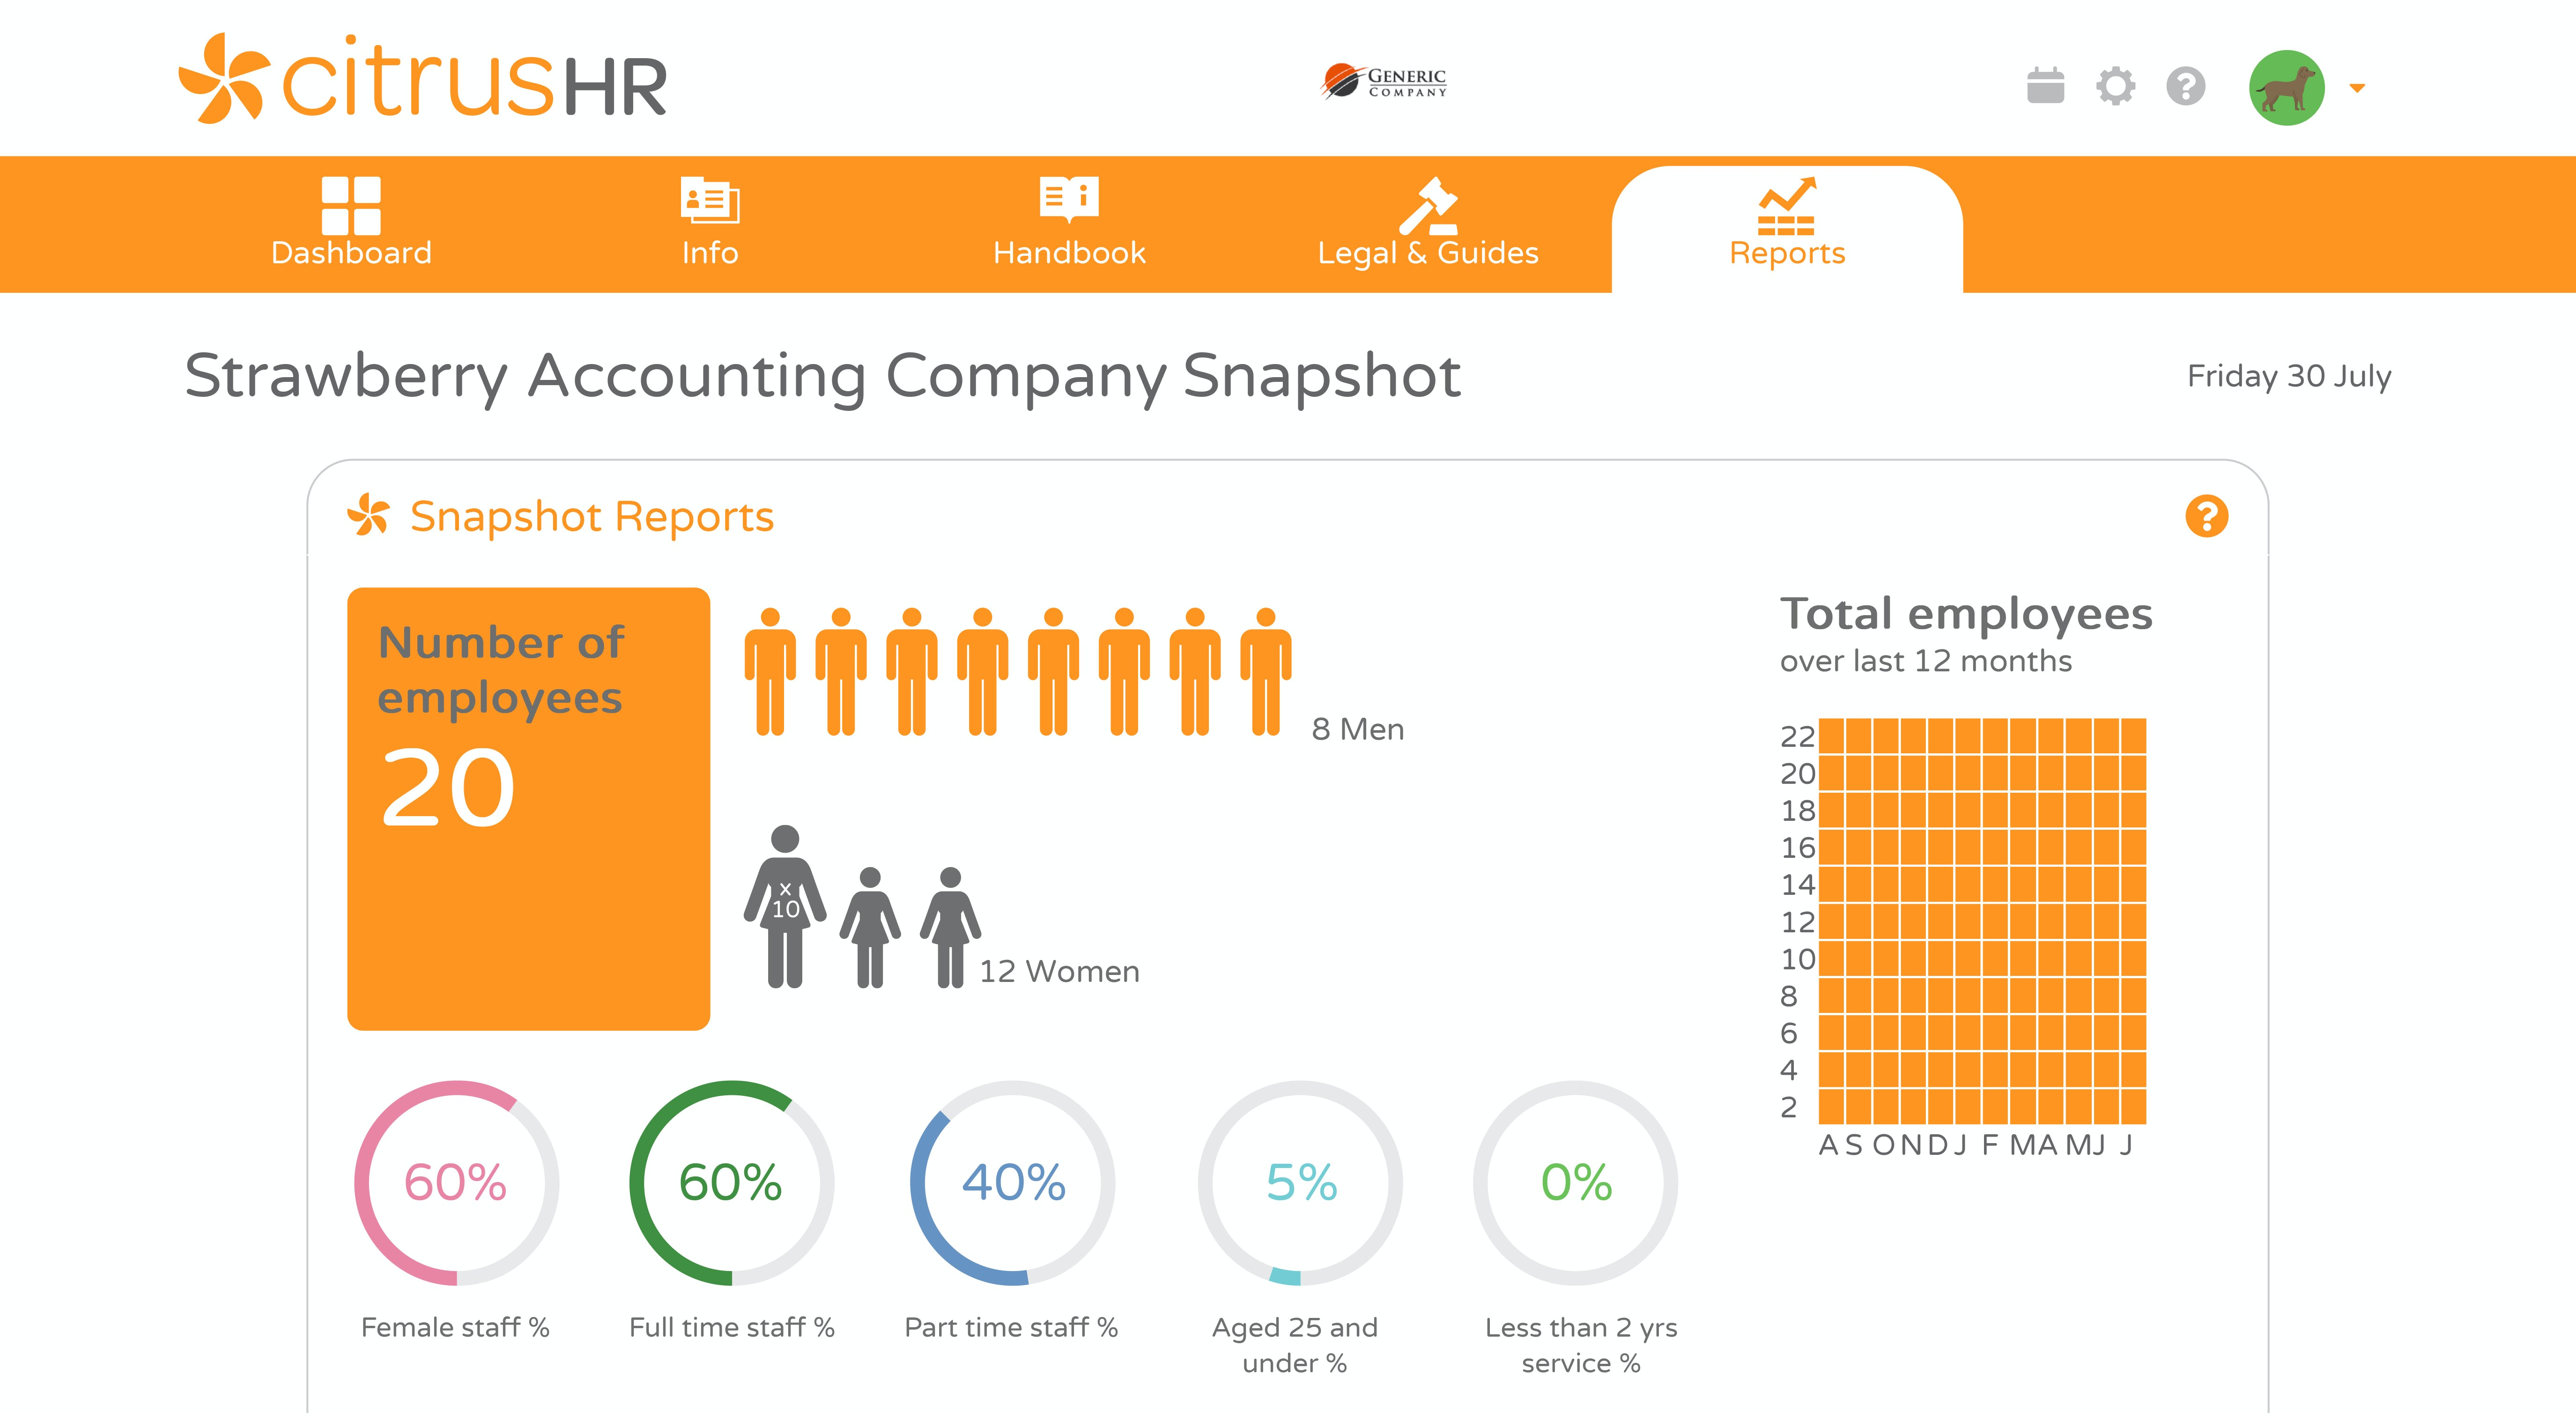 citrusHR Software - Understand who's working in your company with the Snapshot Reports